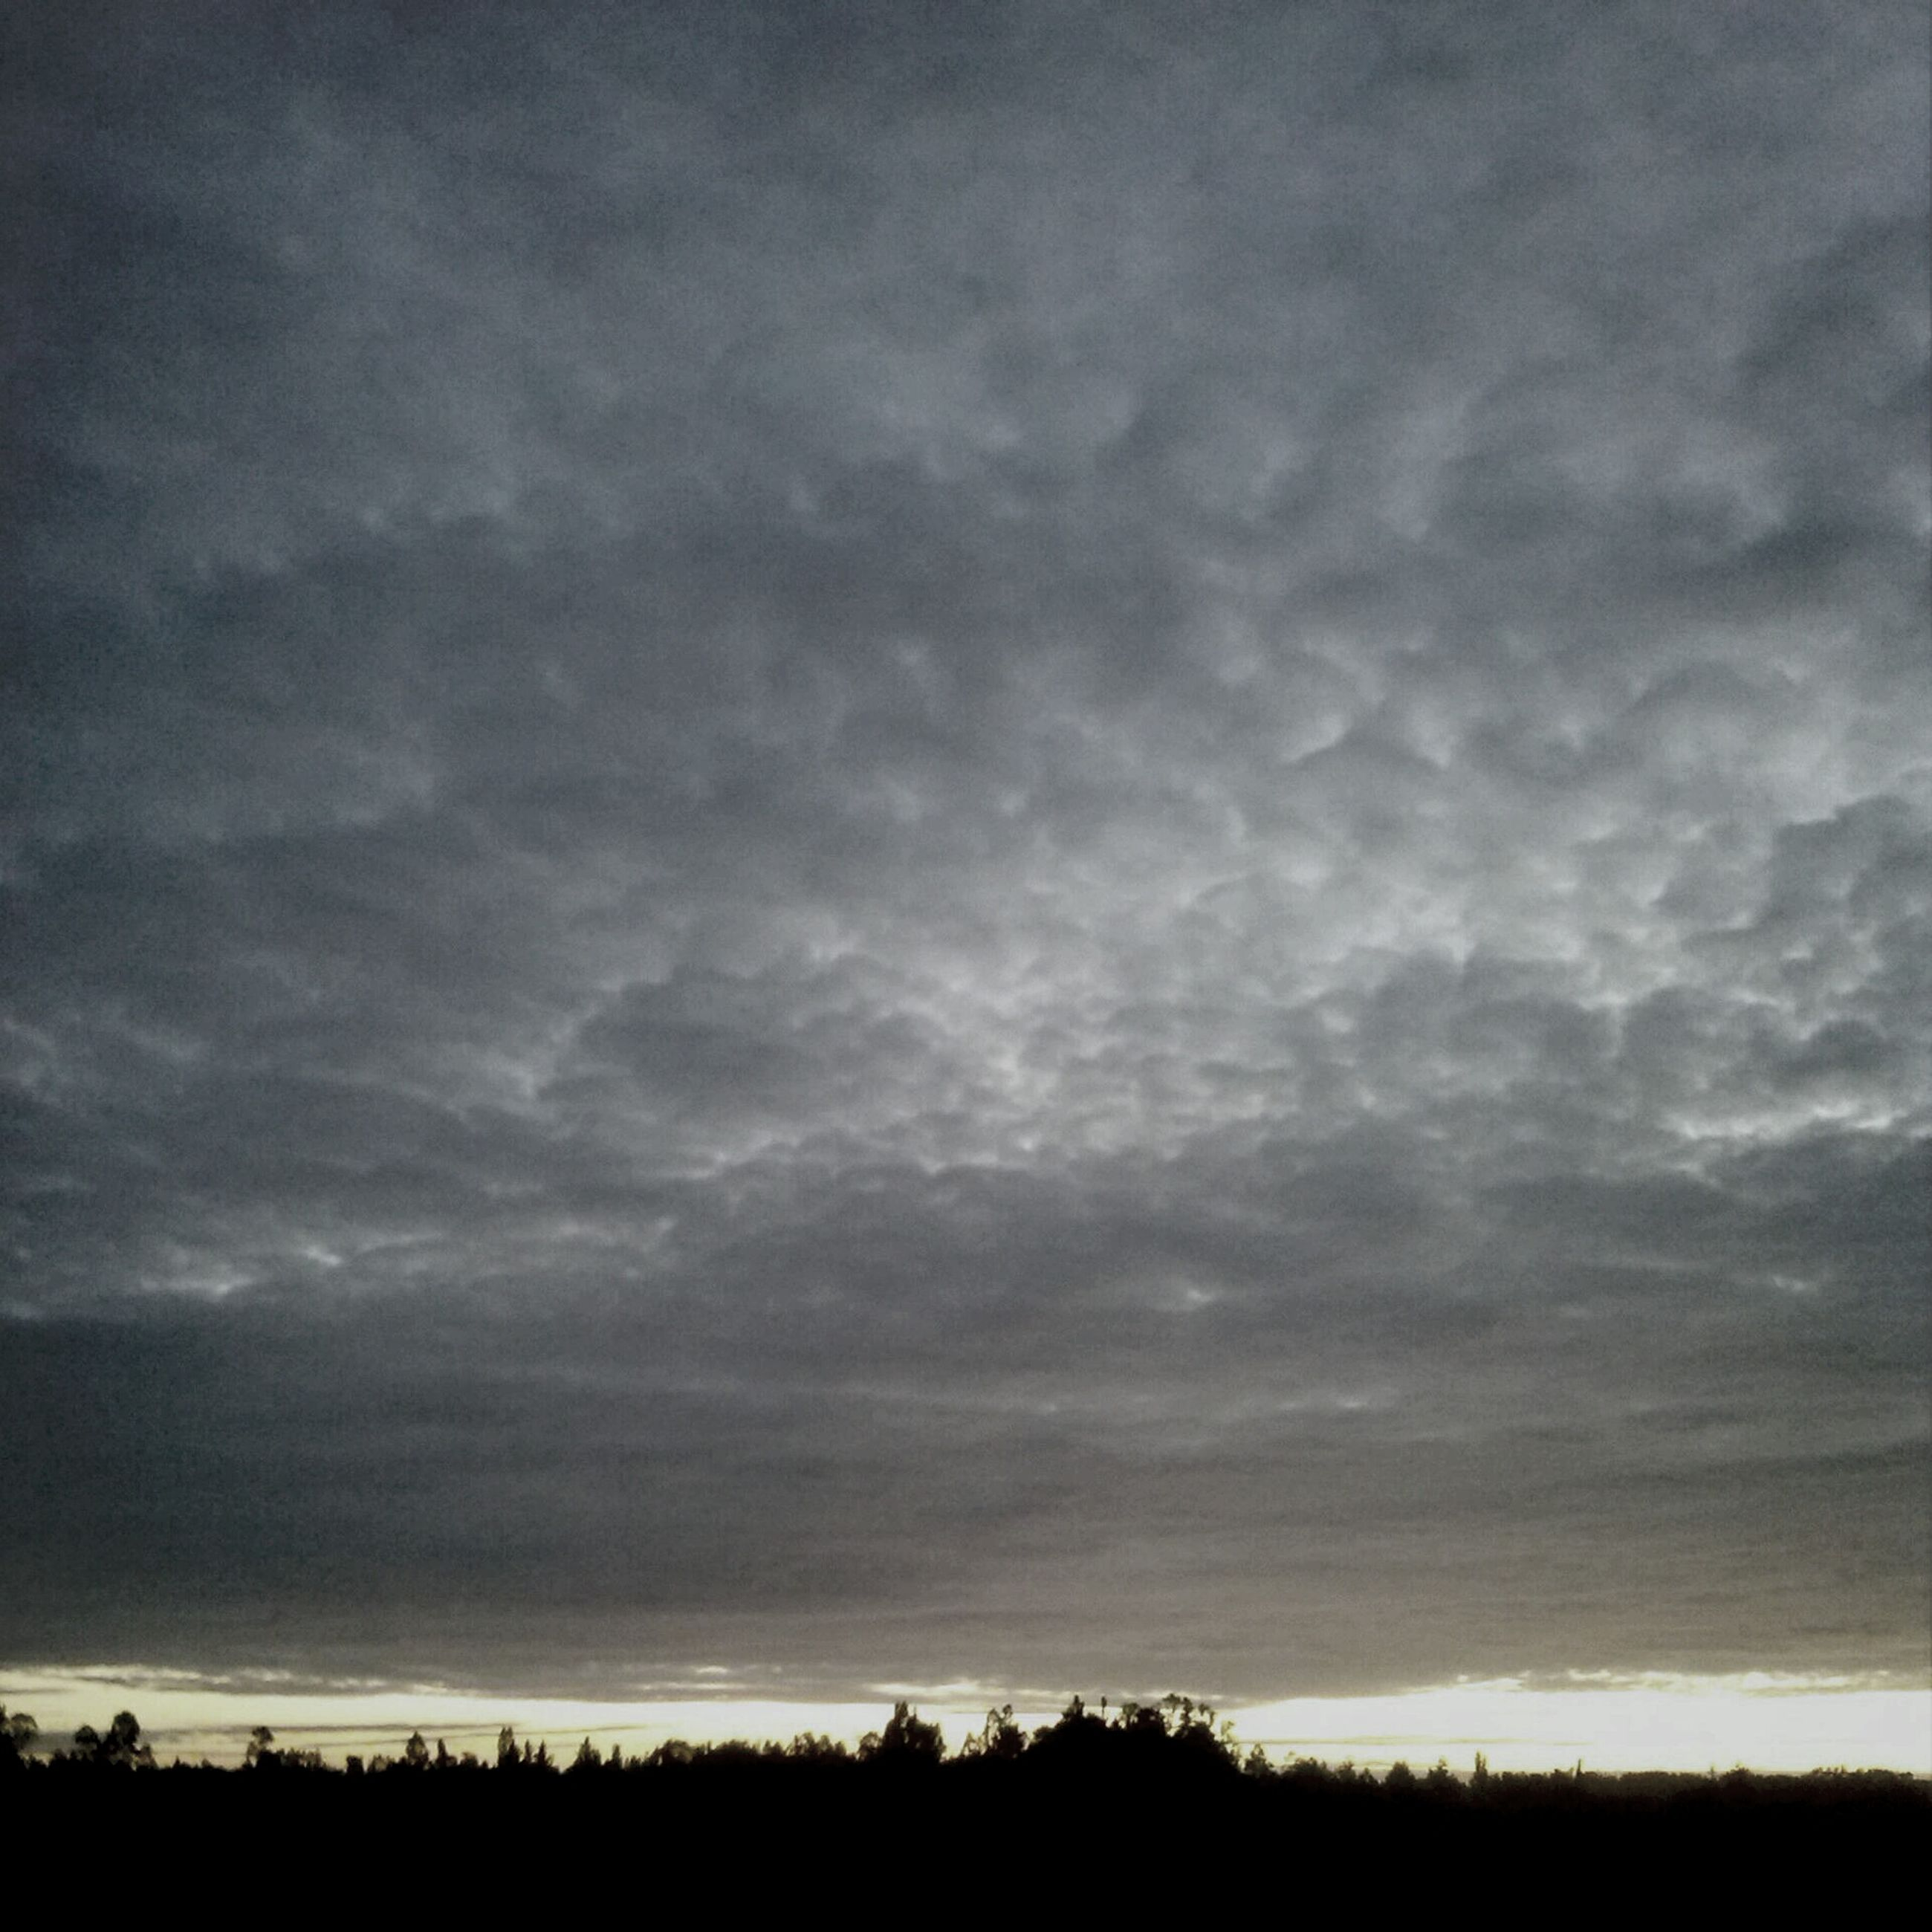 sky, tranquil scene, tranquility, scenics, cloud - sky, beauty in nature, landscape, cloudy, field, silhouette, nature, sunset, cloud, weather, overcast, idyllic, dramatic sky, dusk, horizon over land, tree